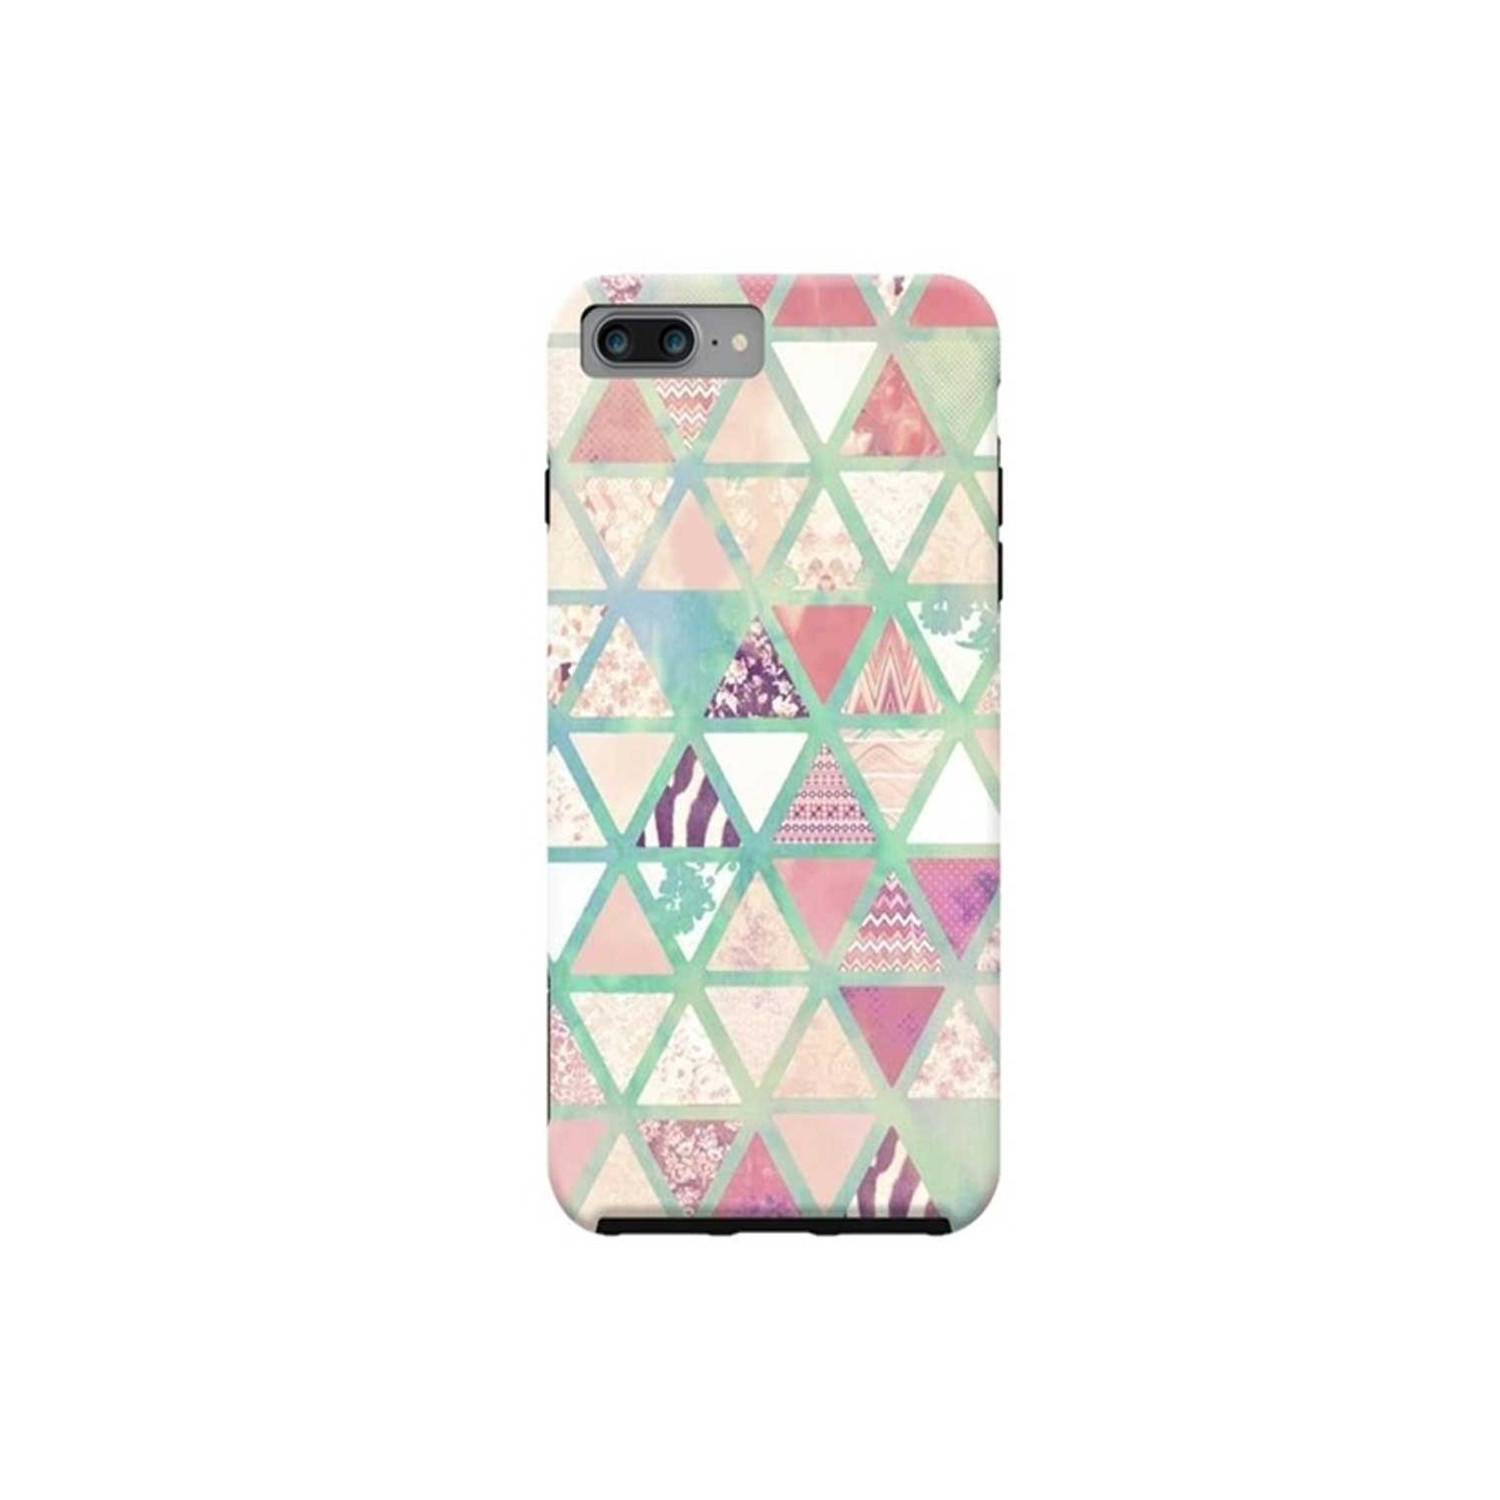 Case -  ArtsCase StrongFit for iPhone 7 PLUS Triangles